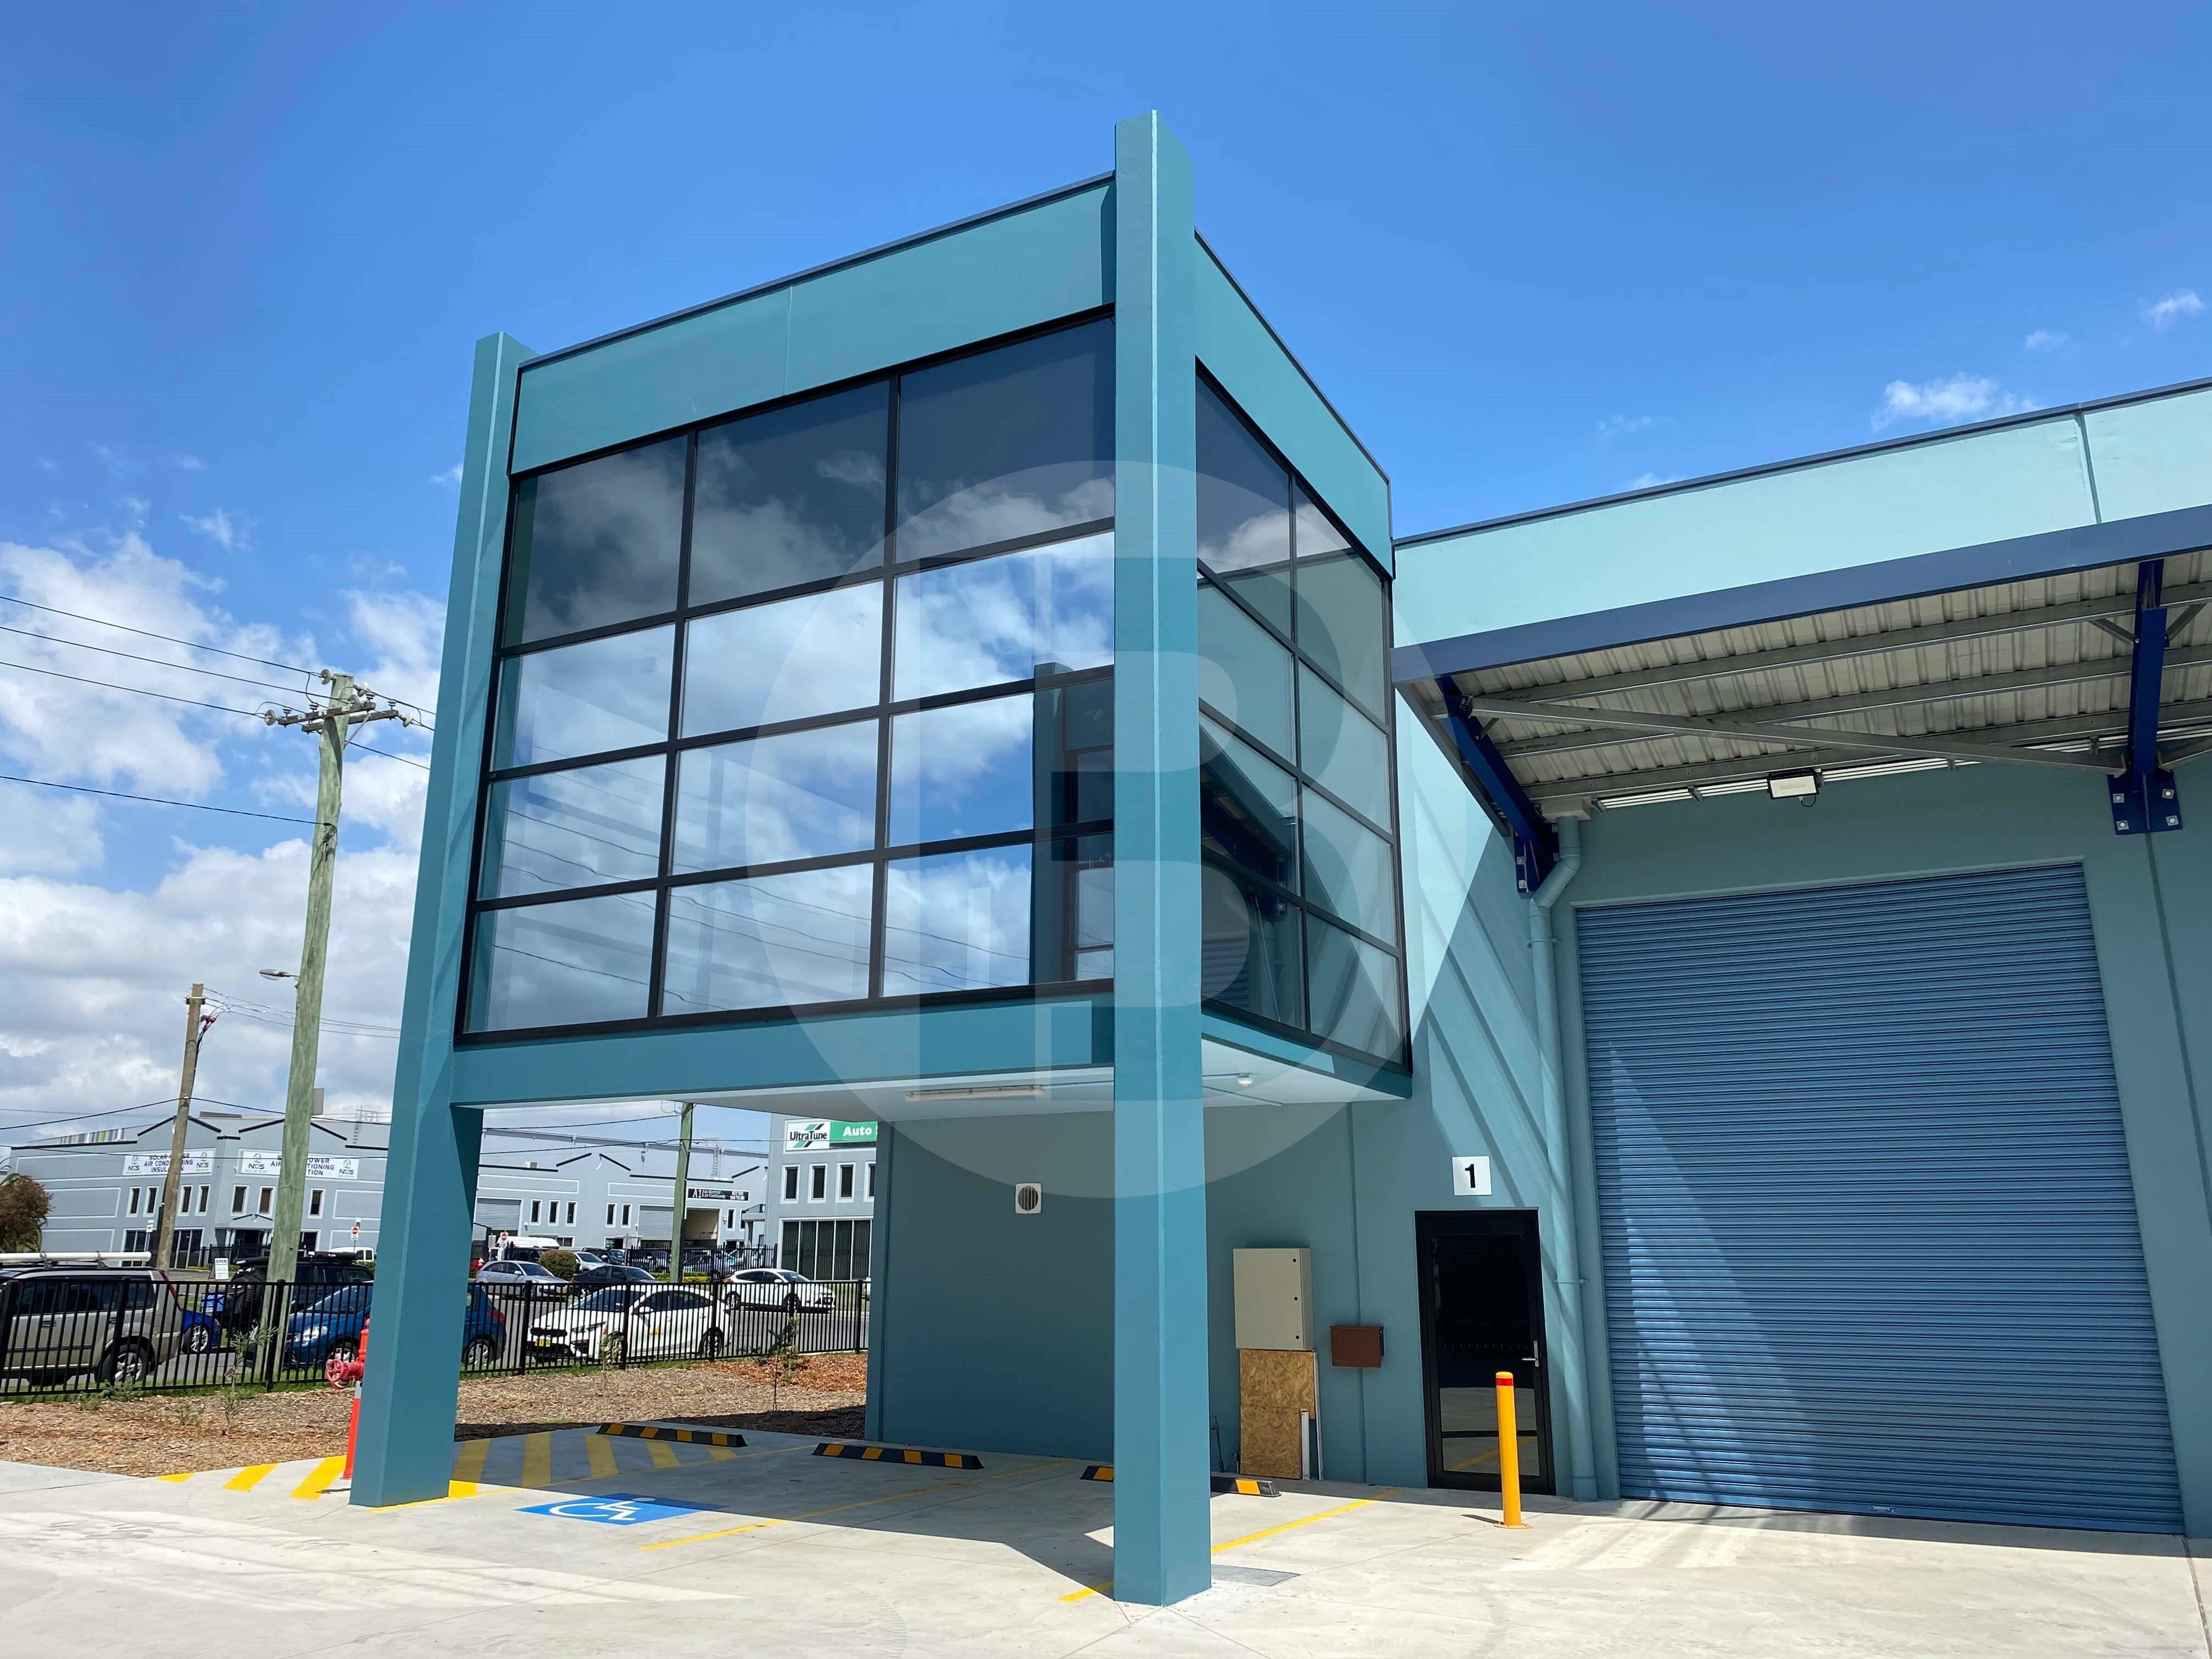 BRAND NEW INDUSTRIAL UNIT WITH EXPOSURE